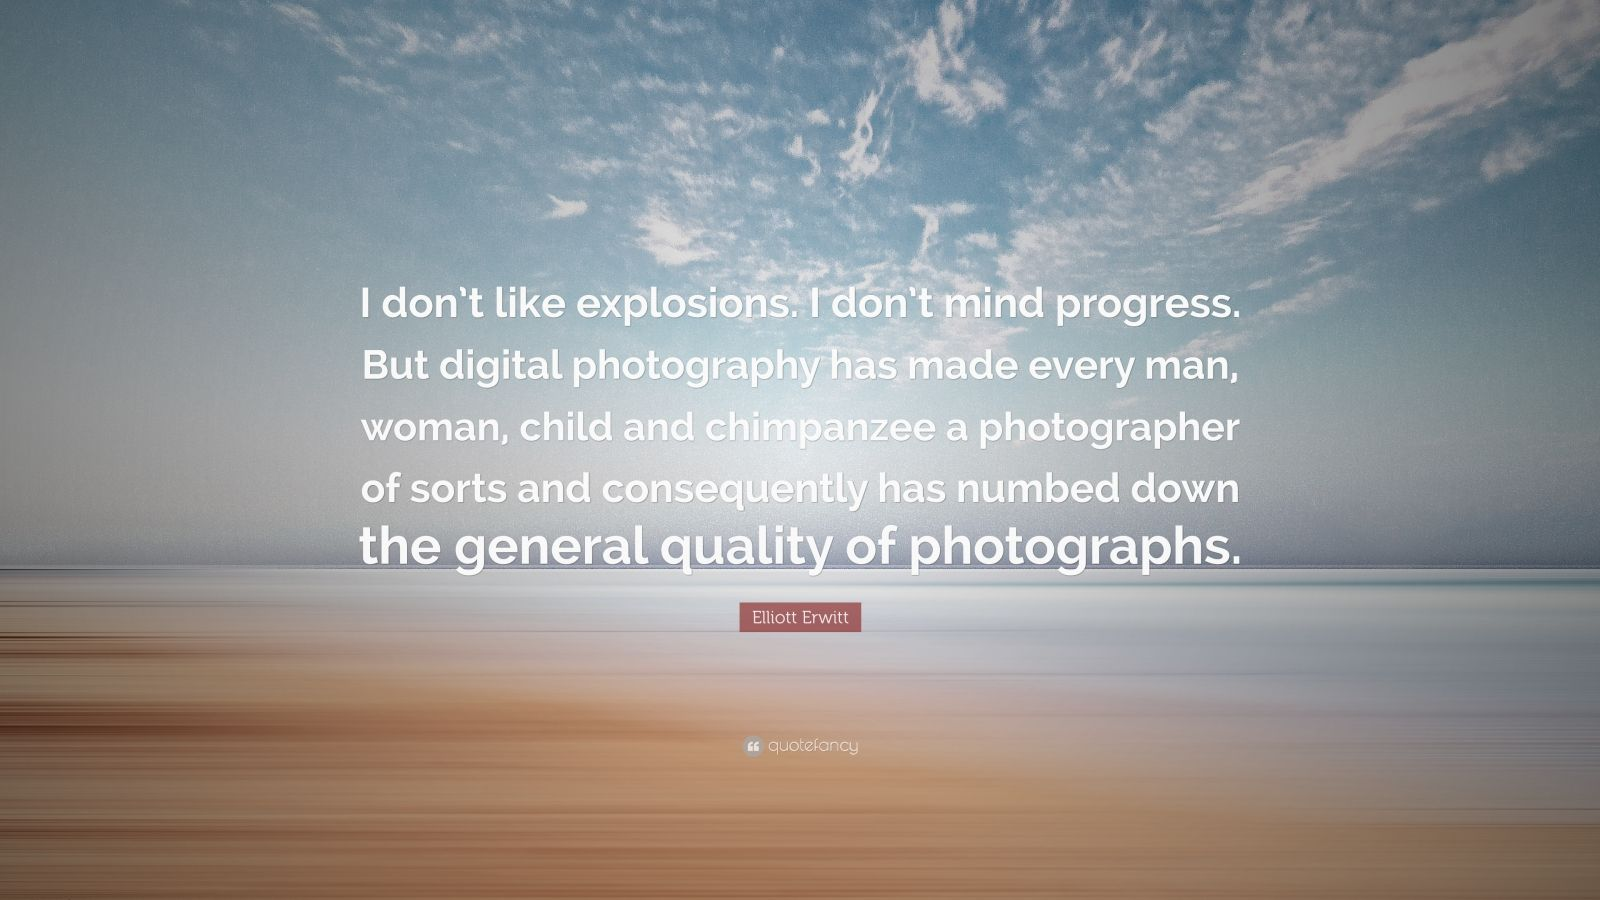 """Elliott Erwitt Quote: """"I don't like explosions. I don't mind progress. But digital photography has made every man, woman, child and chimpanzee a photographer of sorts and consequently has numbed down the general quality of photographs."""""""